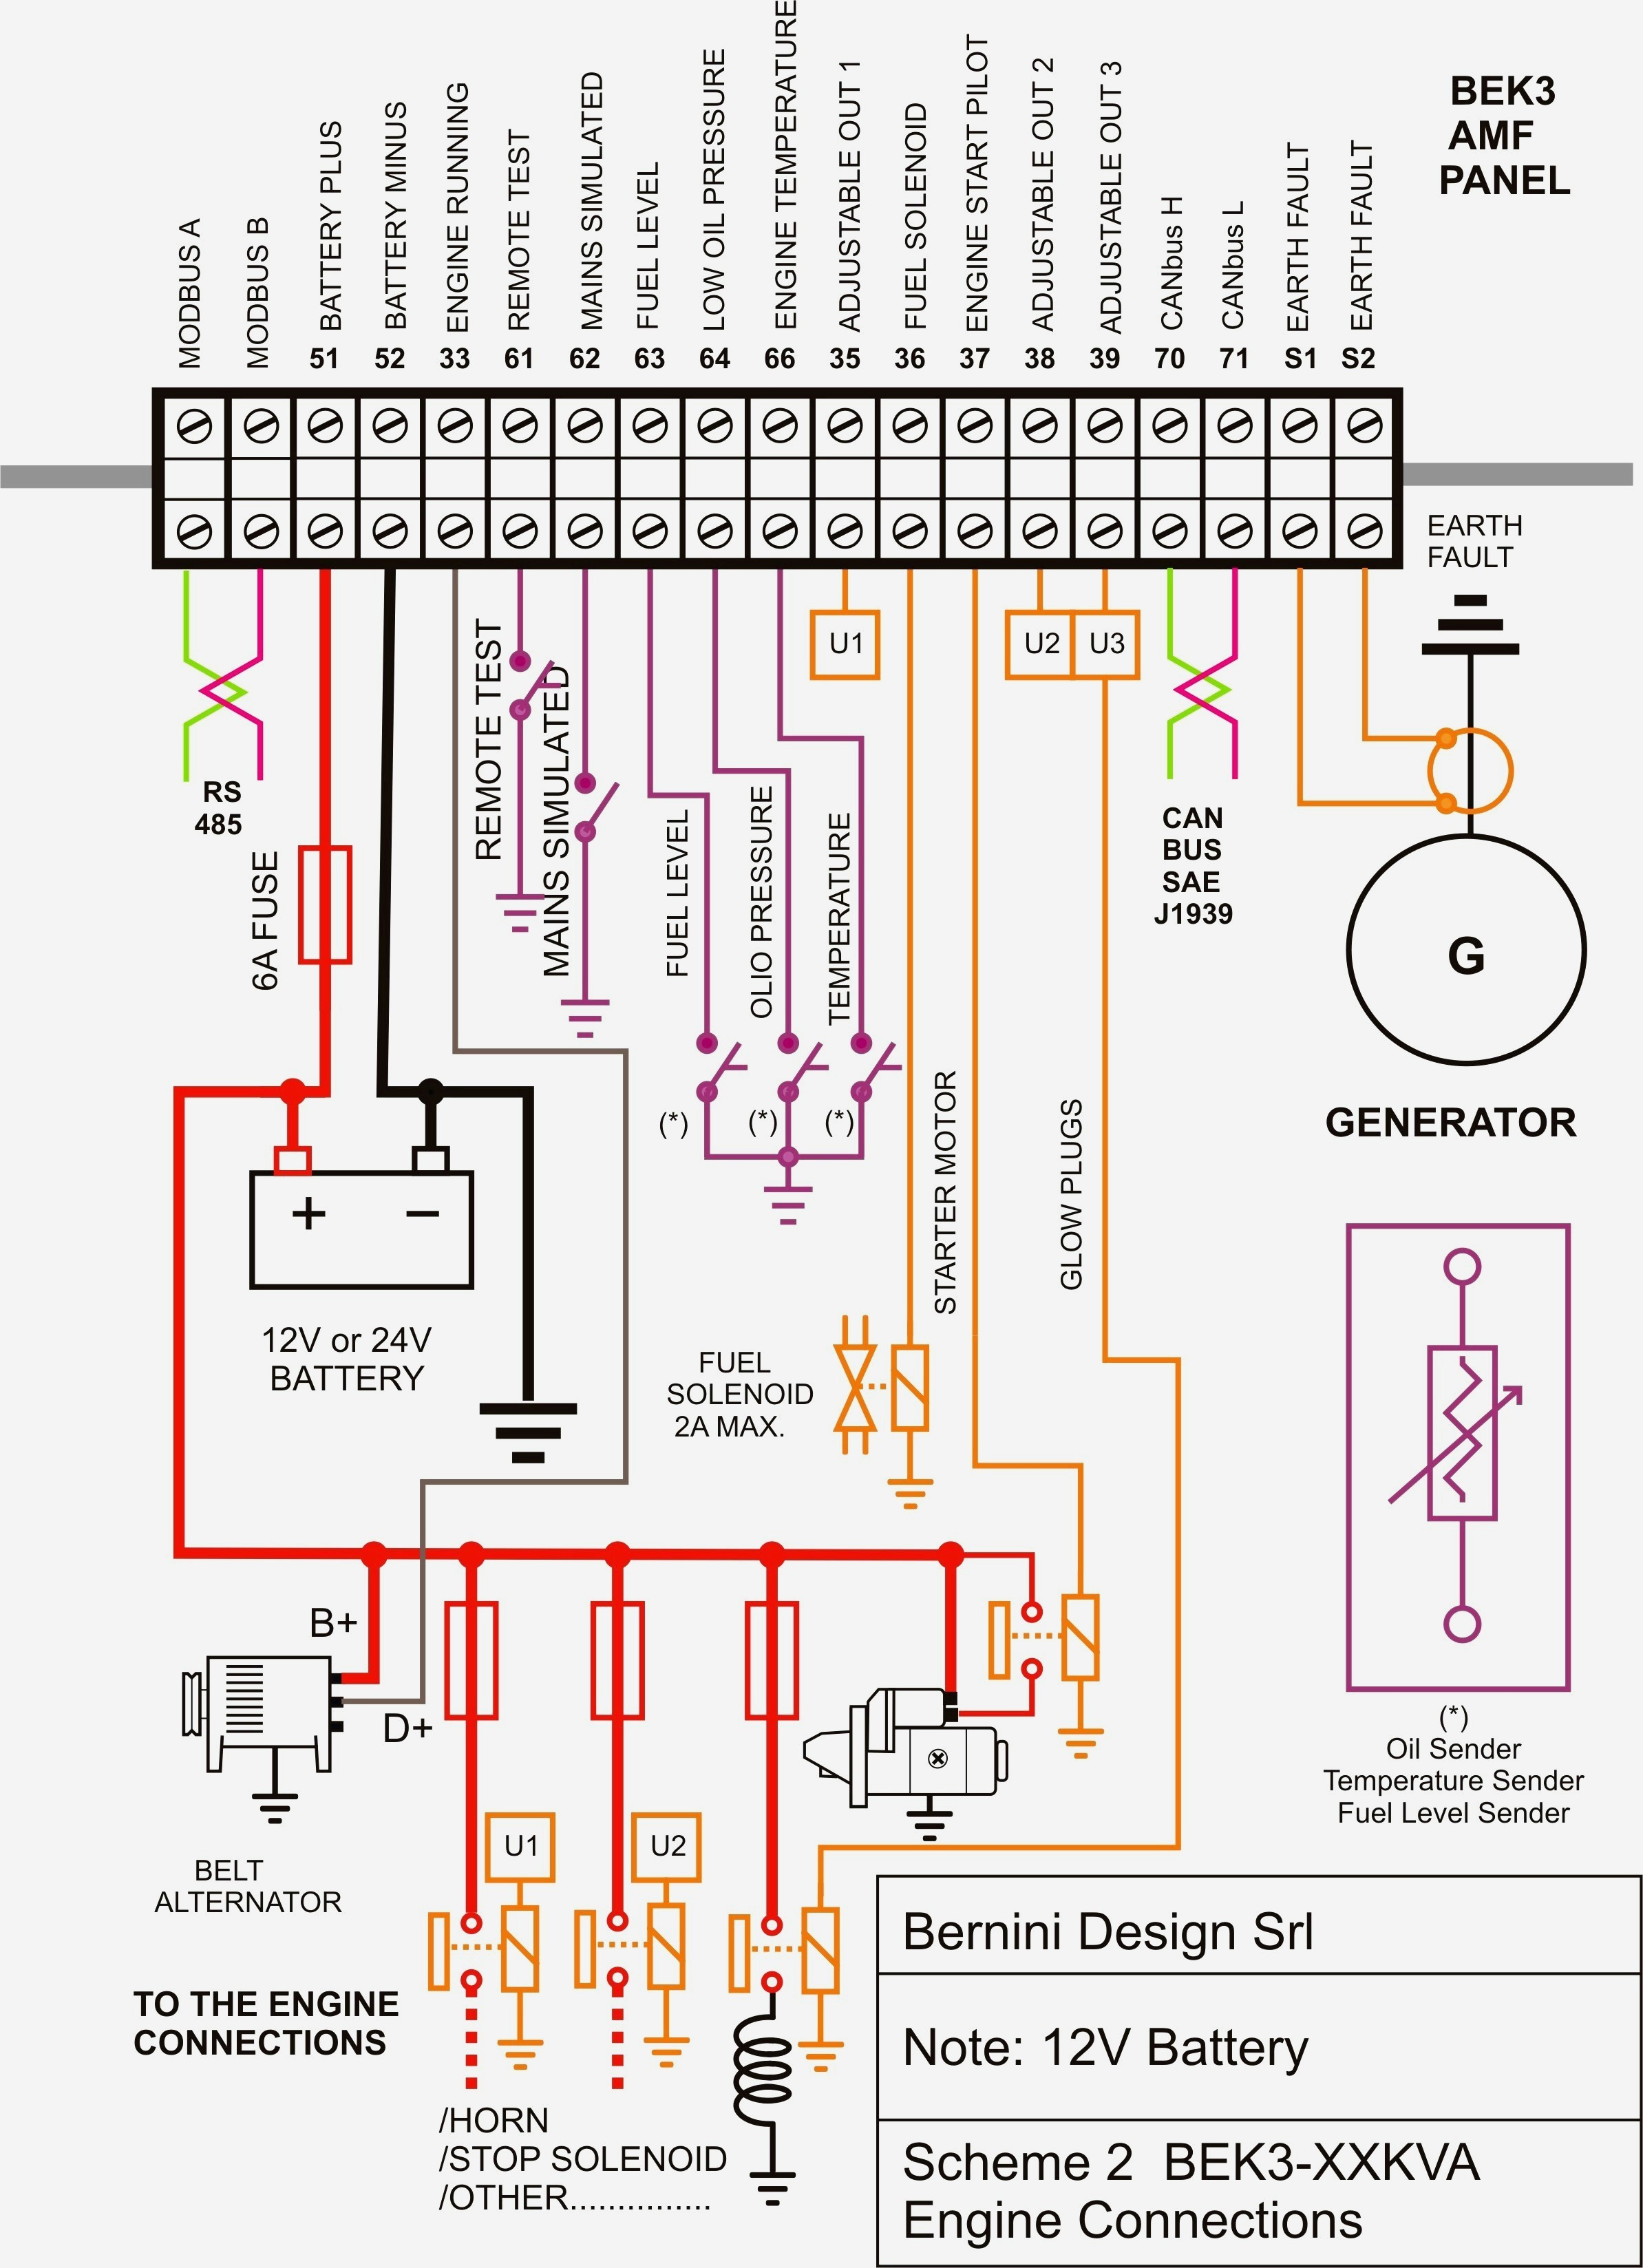 International 4300 Stereo Wiring Diagram from static-cdn.imageservice.cloud